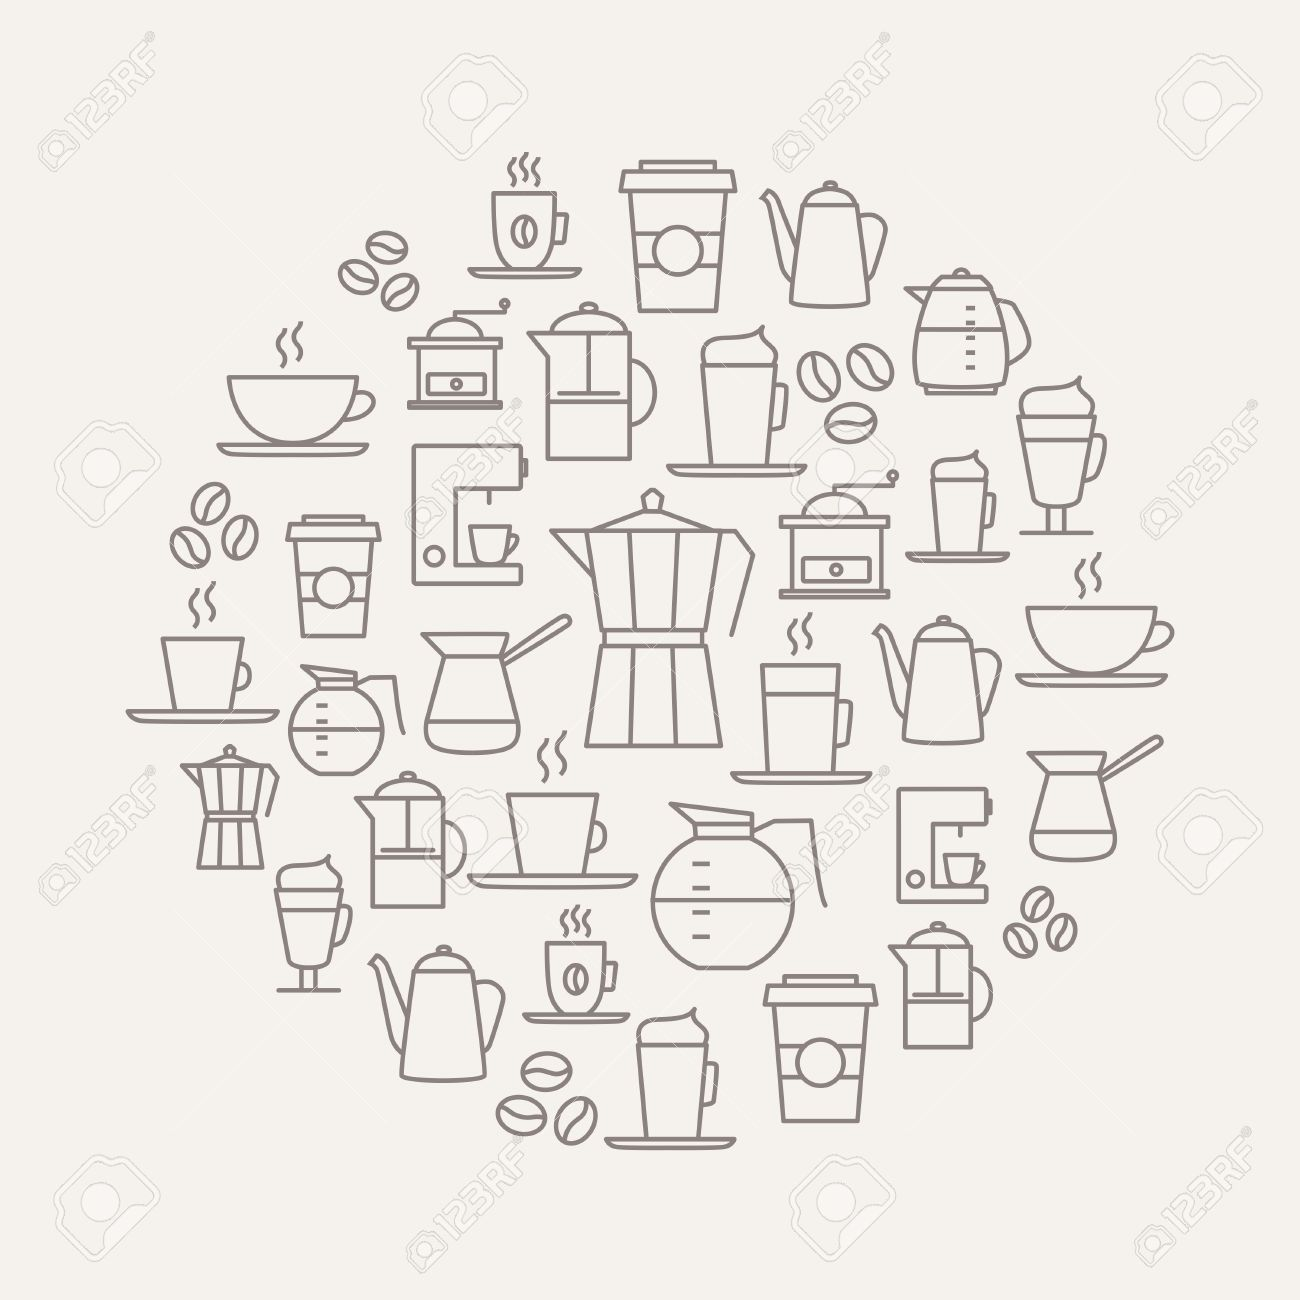 Coffee background made from coffee icons - thin line design. For restaurant menus, interior decorations, stationery, business cards, brand design, websites etc. - 50372217